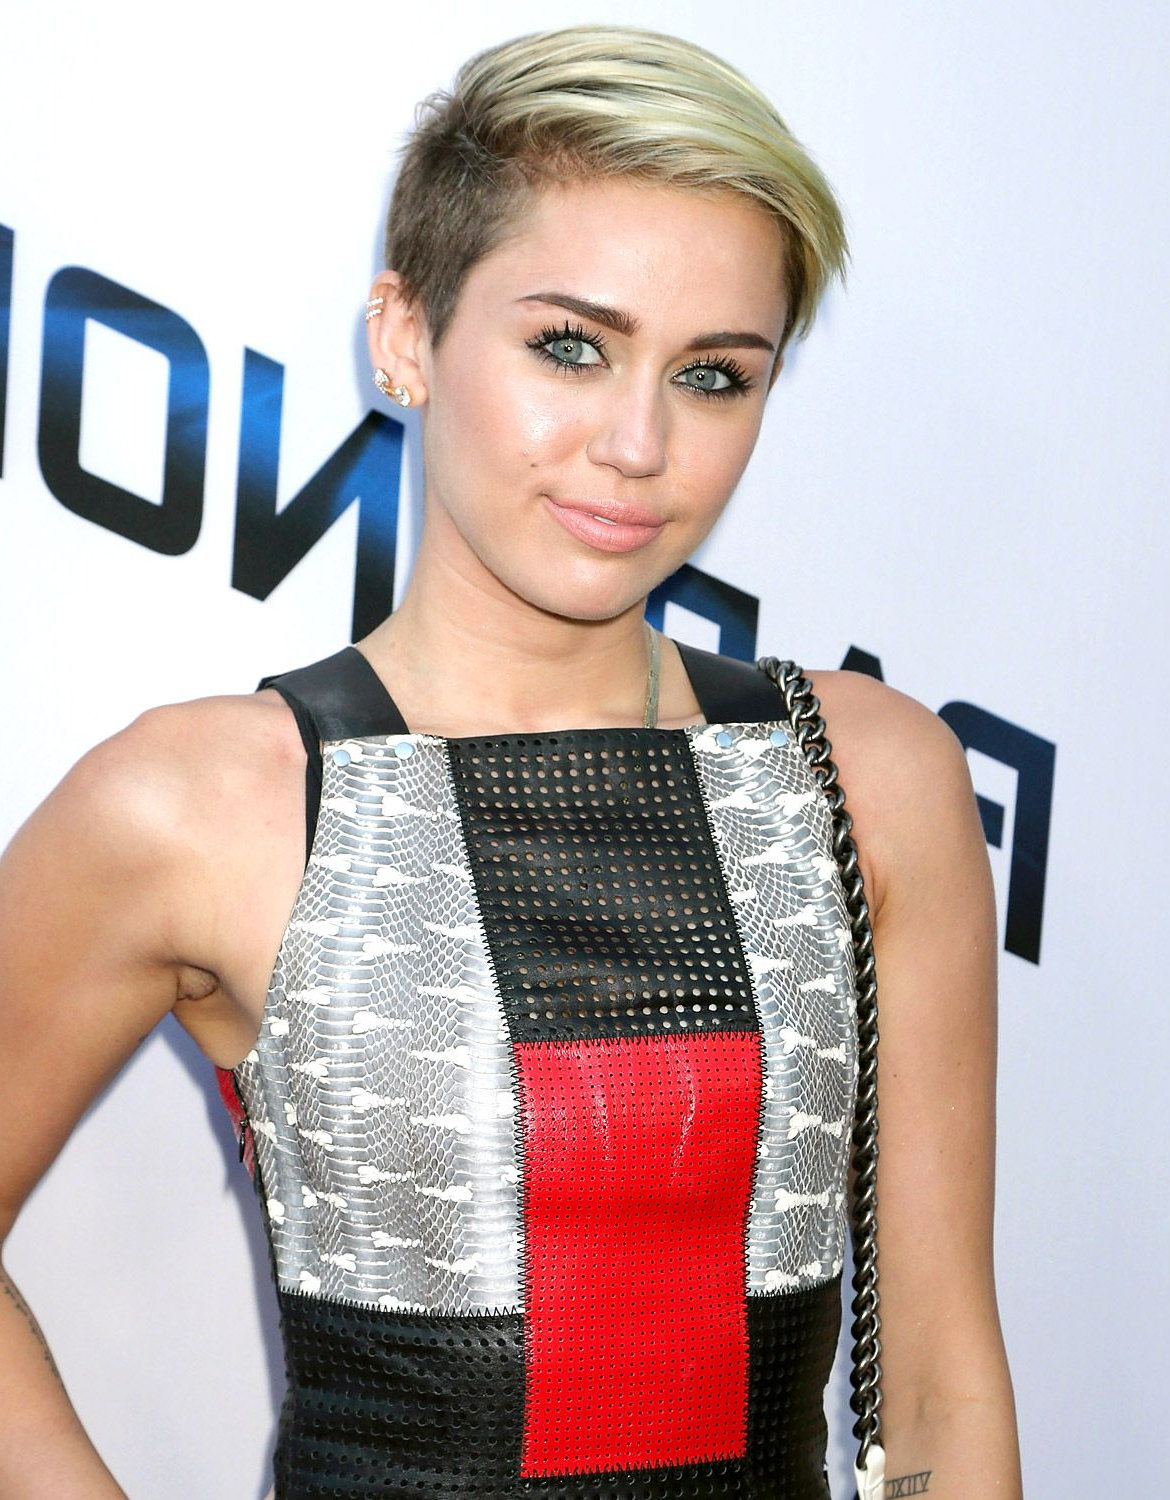 Image Result For Miley Cyrus Hair | Fashion | Pinterest | Miley Inside Miley Cyrus Short Haircuts (View 8 of 25)